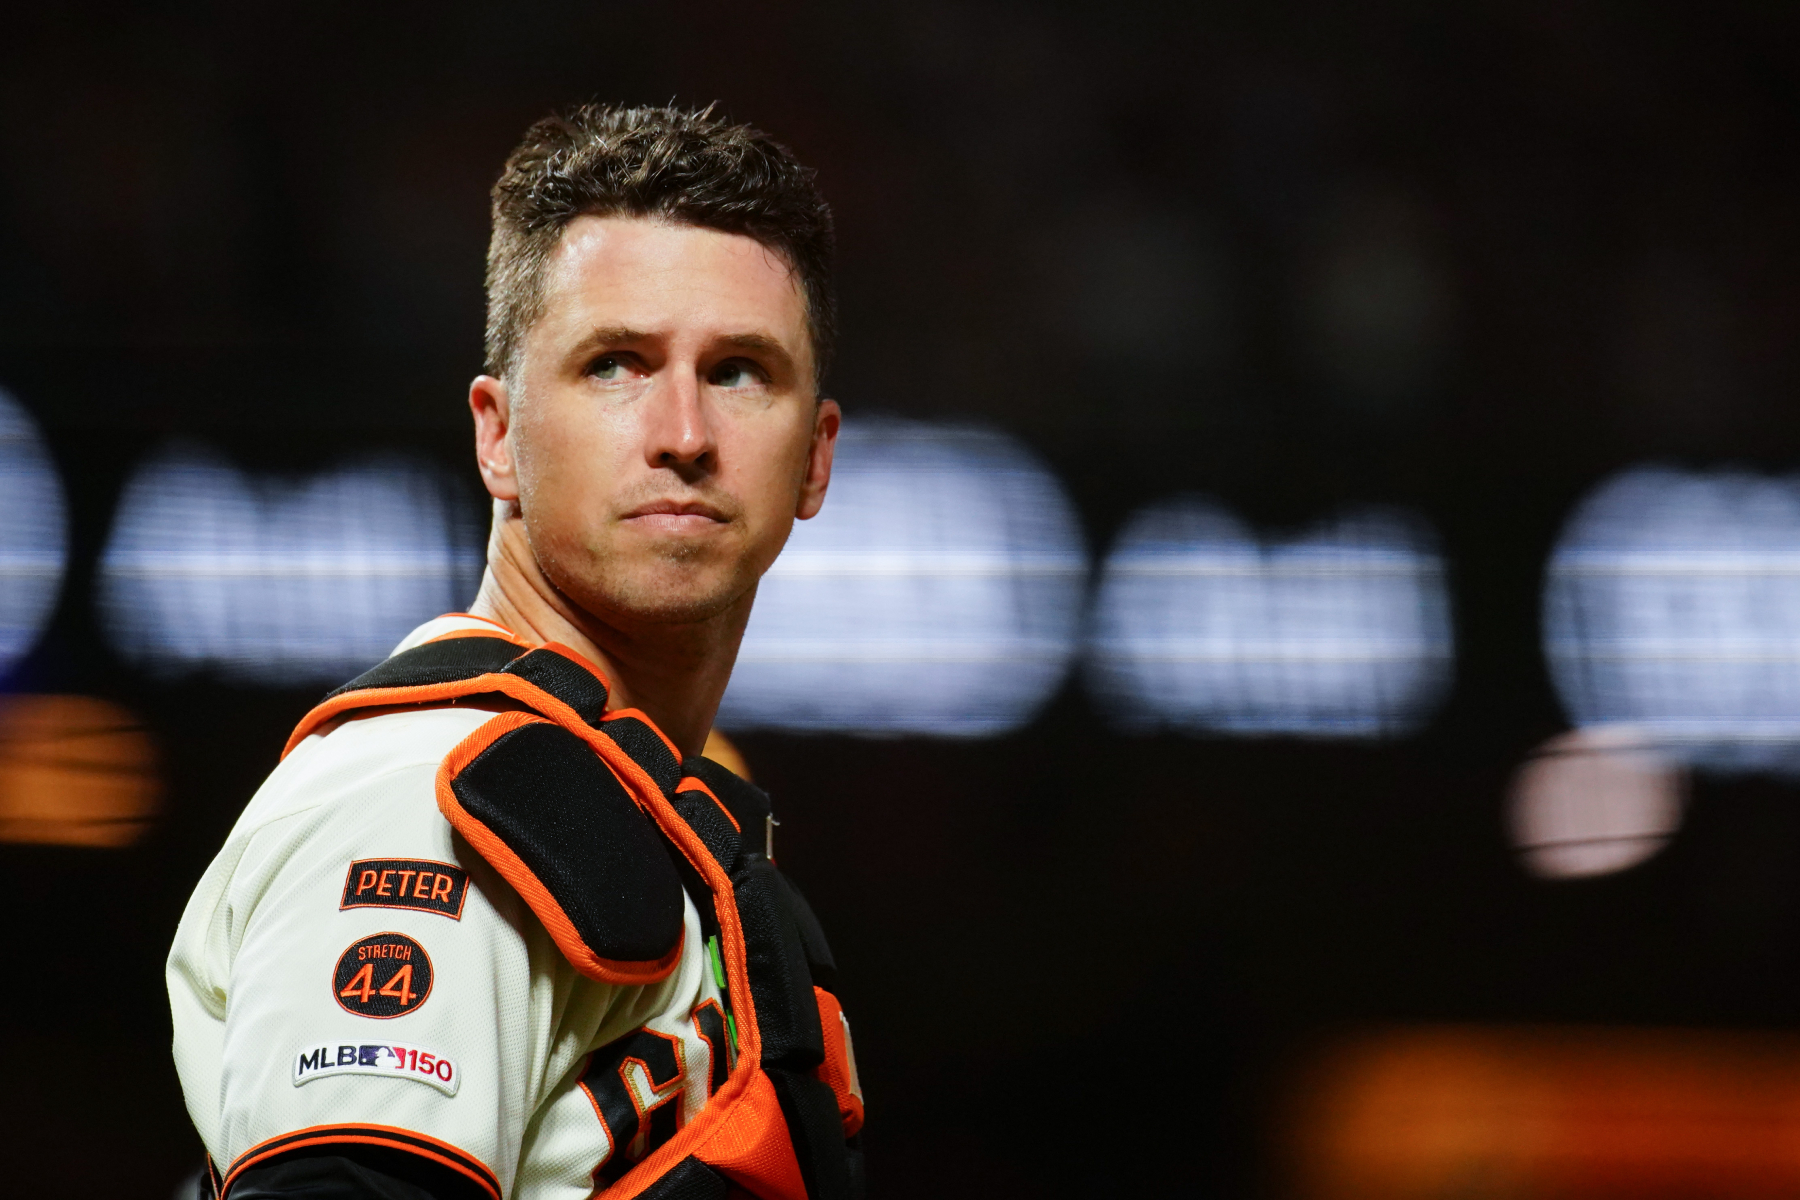 Buster Posey has been one of the best players in the MLB for the Giants over the past decade. Hitting seems to run in his family.